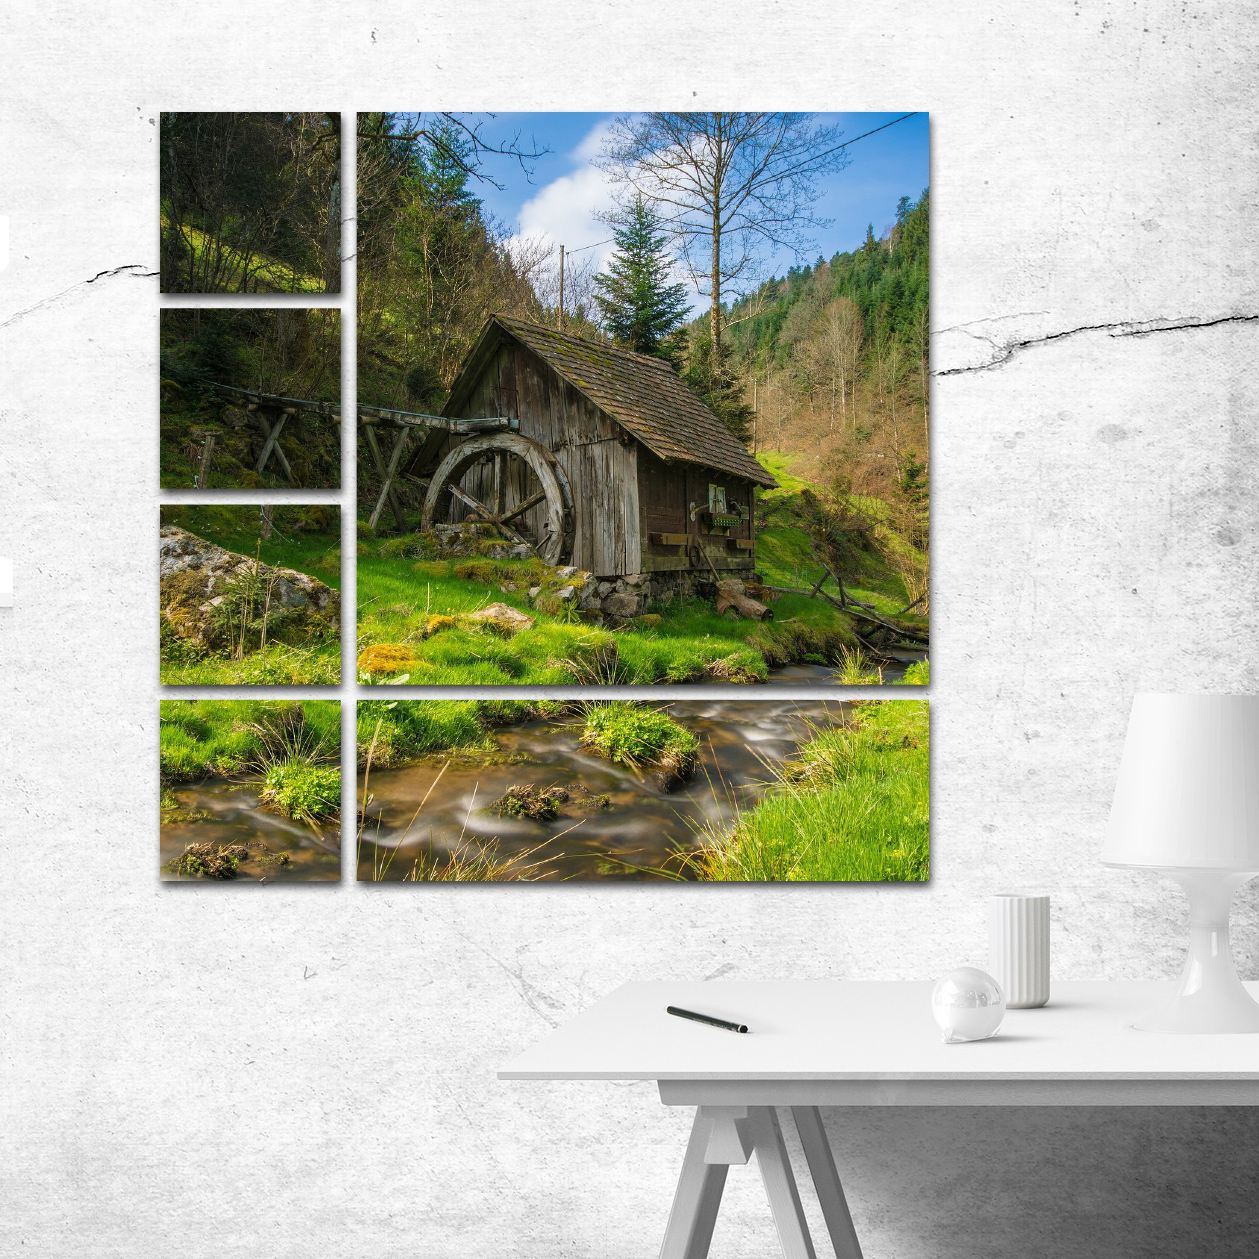 Wall Clusters and Splits custom photo prints example from ArtisanHD